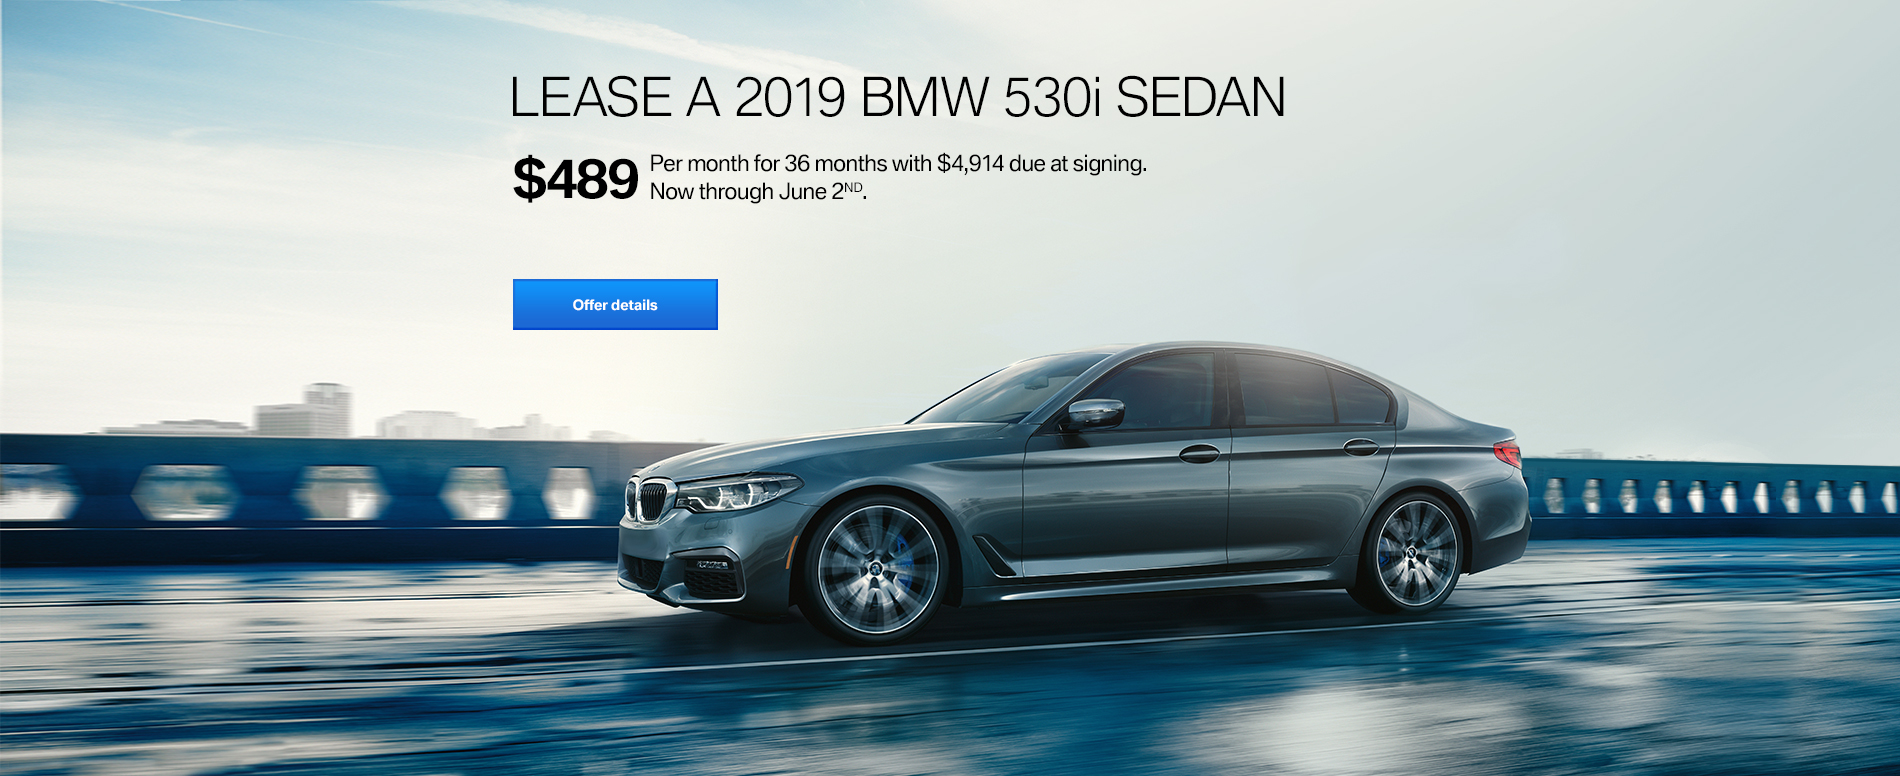 LEASE A 2019 BMW 530i xDRIVE FOR $519/MONTH FOR 36 MONTHS WITH $